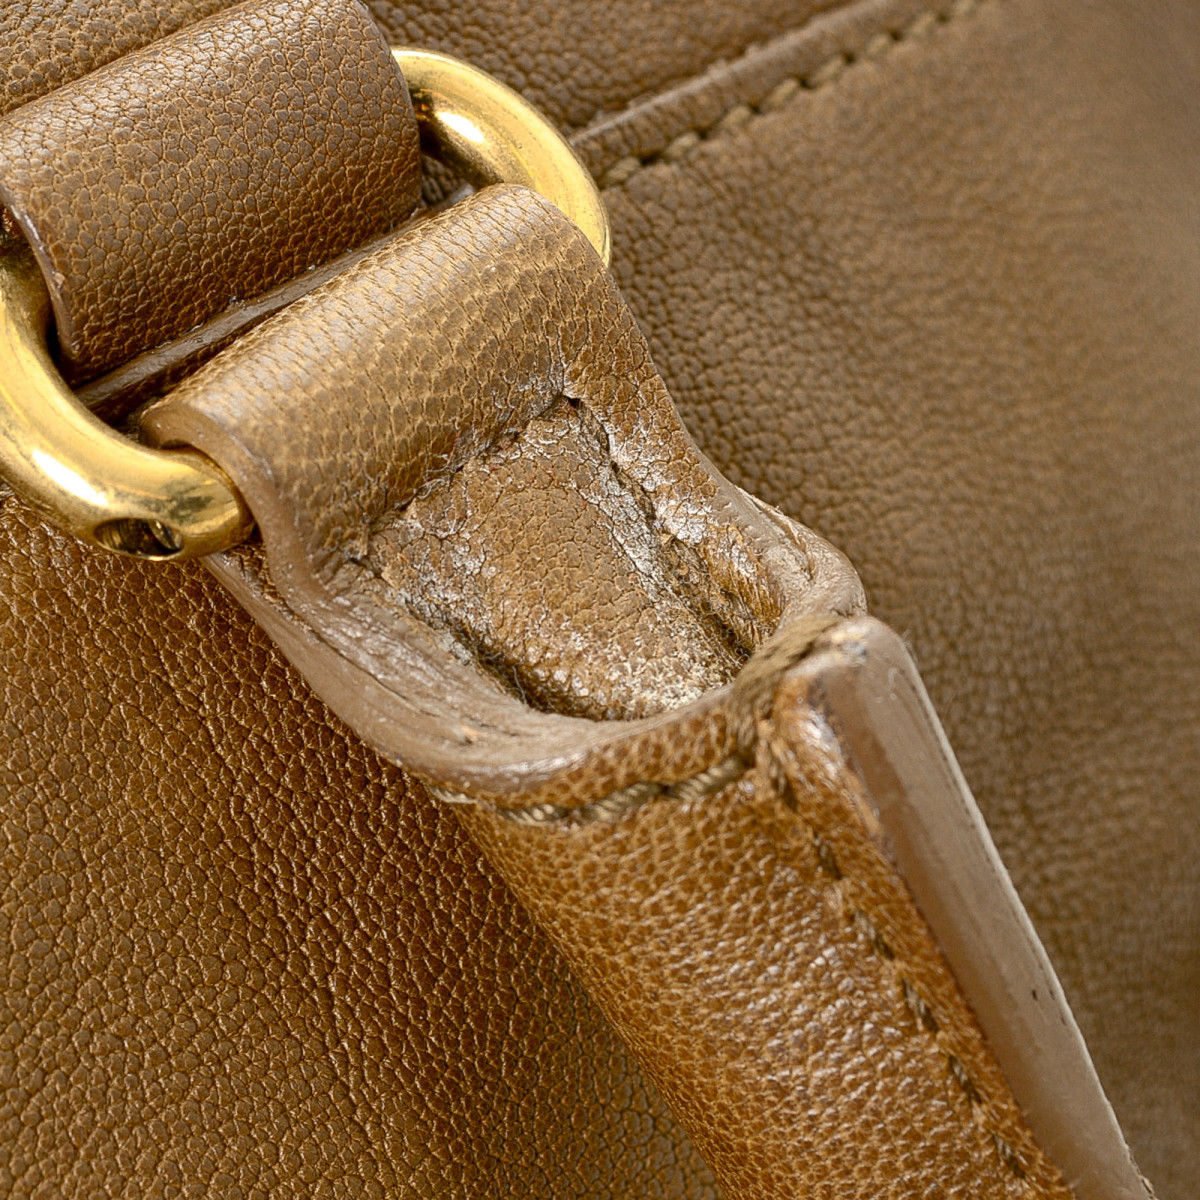 a5c4c9fa8036 Yves Saint Laurent Chyc Cabas Large Leather - LXRandCo - Pre-Owned ...